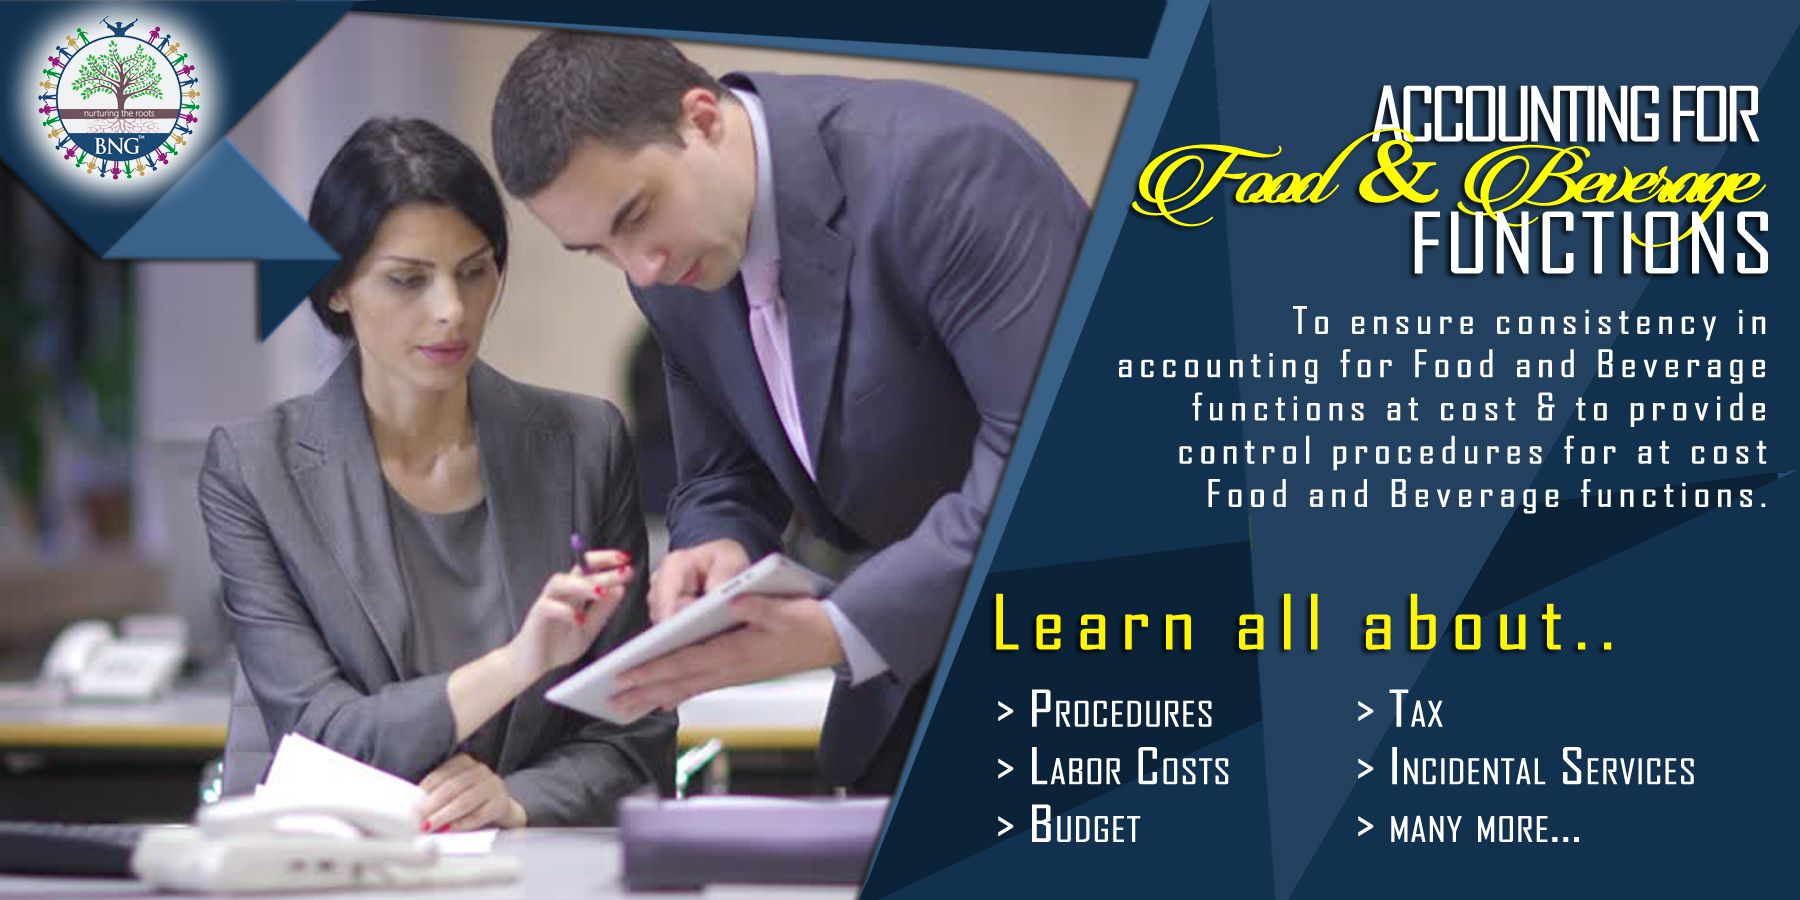 Accounting for Food and Beverage functions by BNG Hotel Management Kolkata